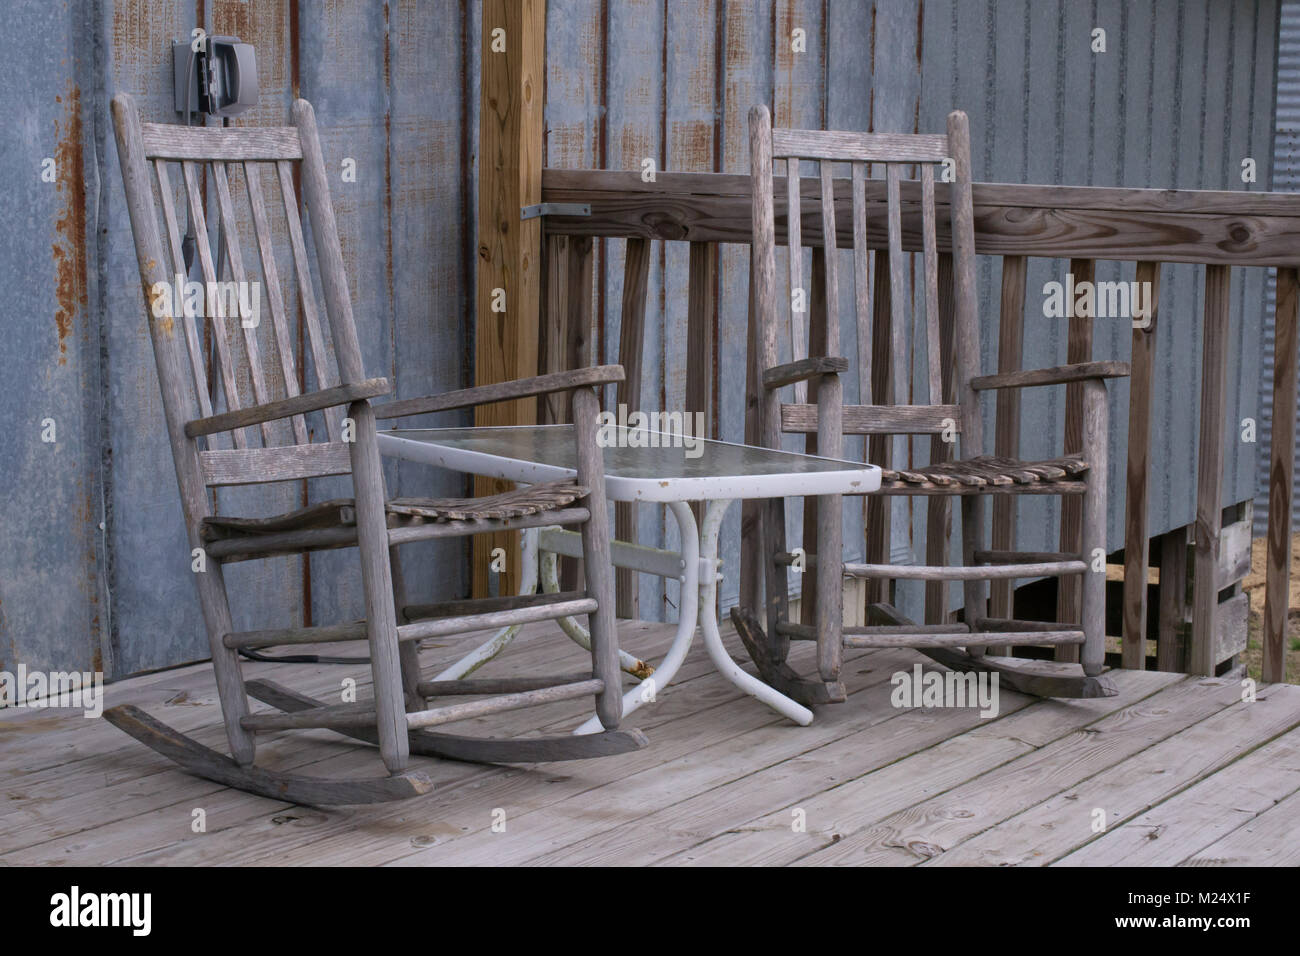 rocking chair resort mountain home arkansas white covers gumtree empty porch stock photos and images alamy